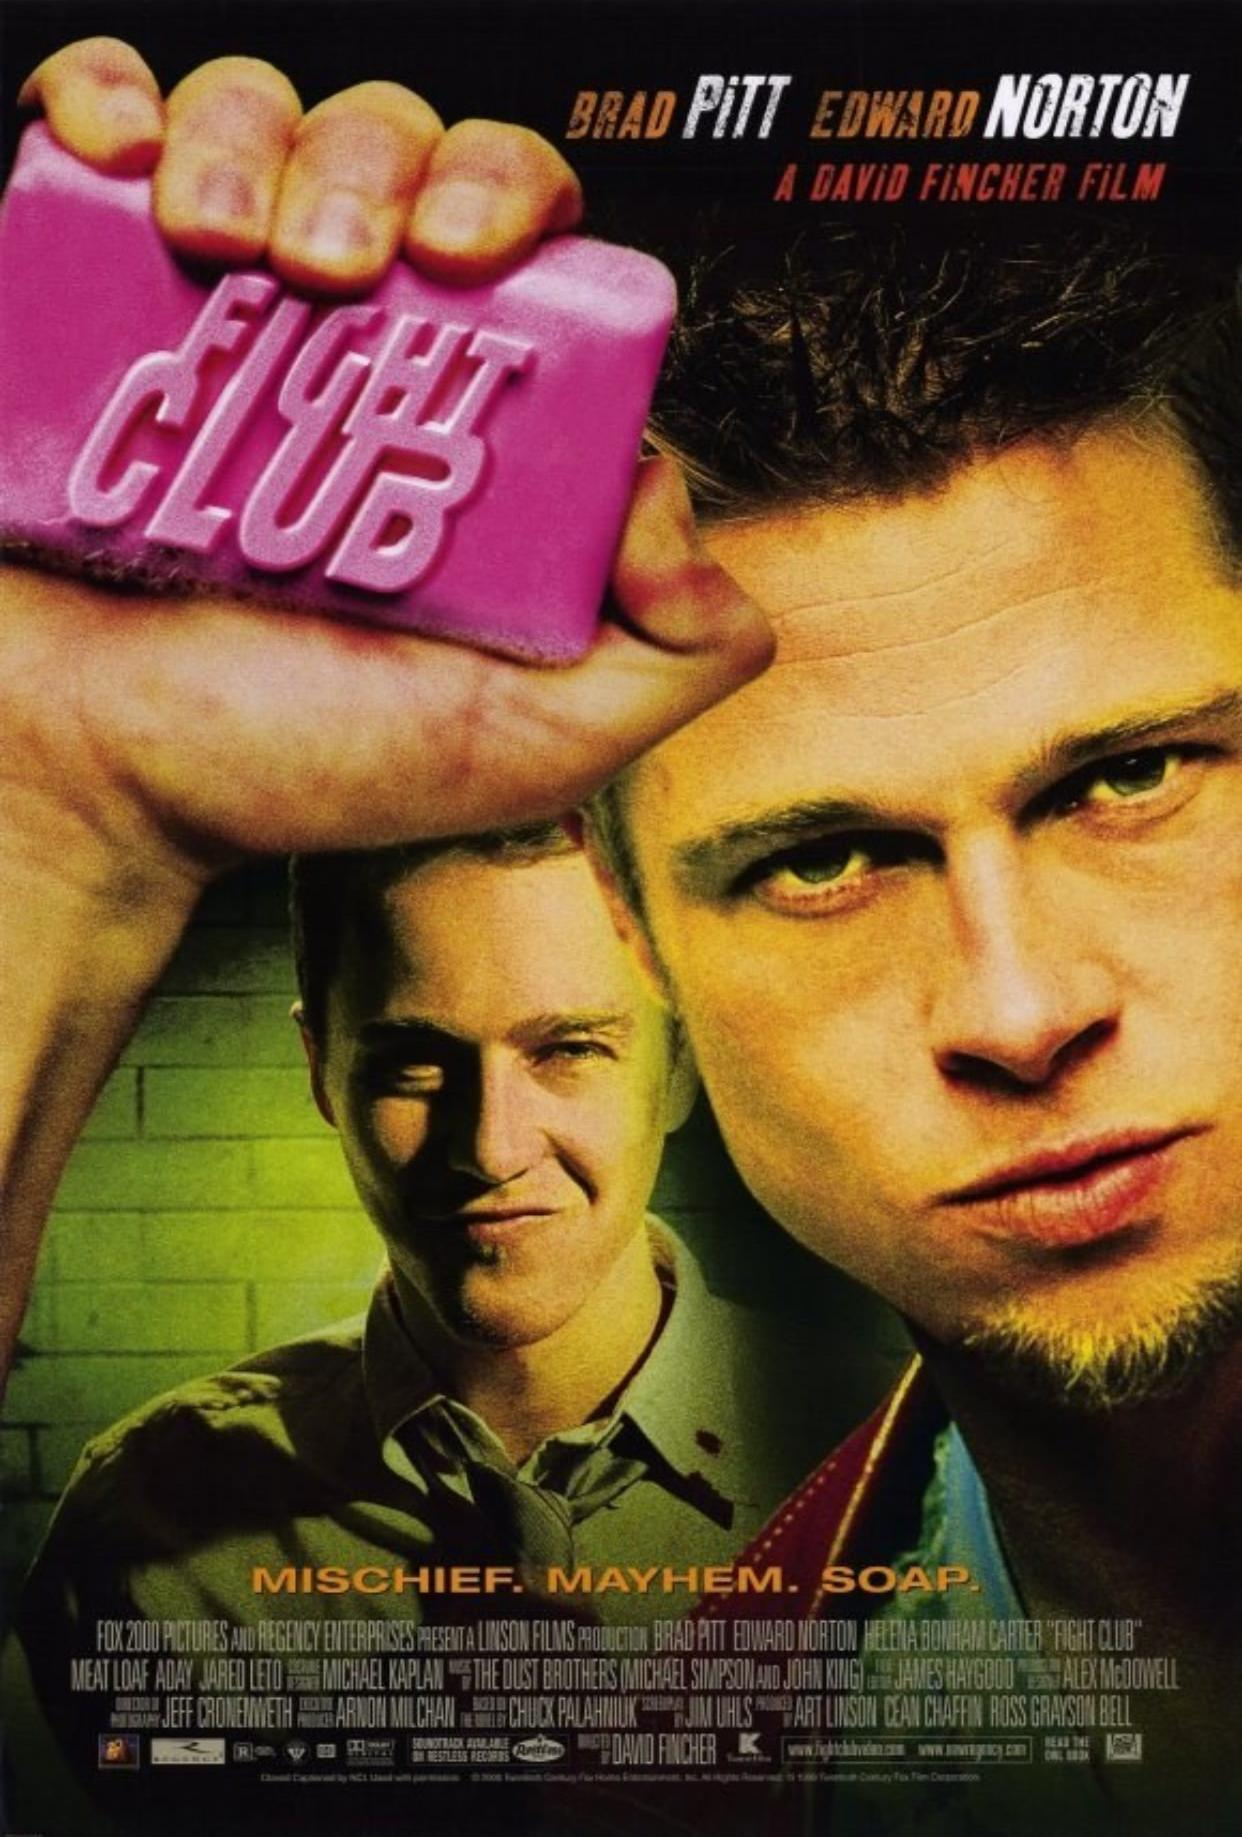 30 rock fight club